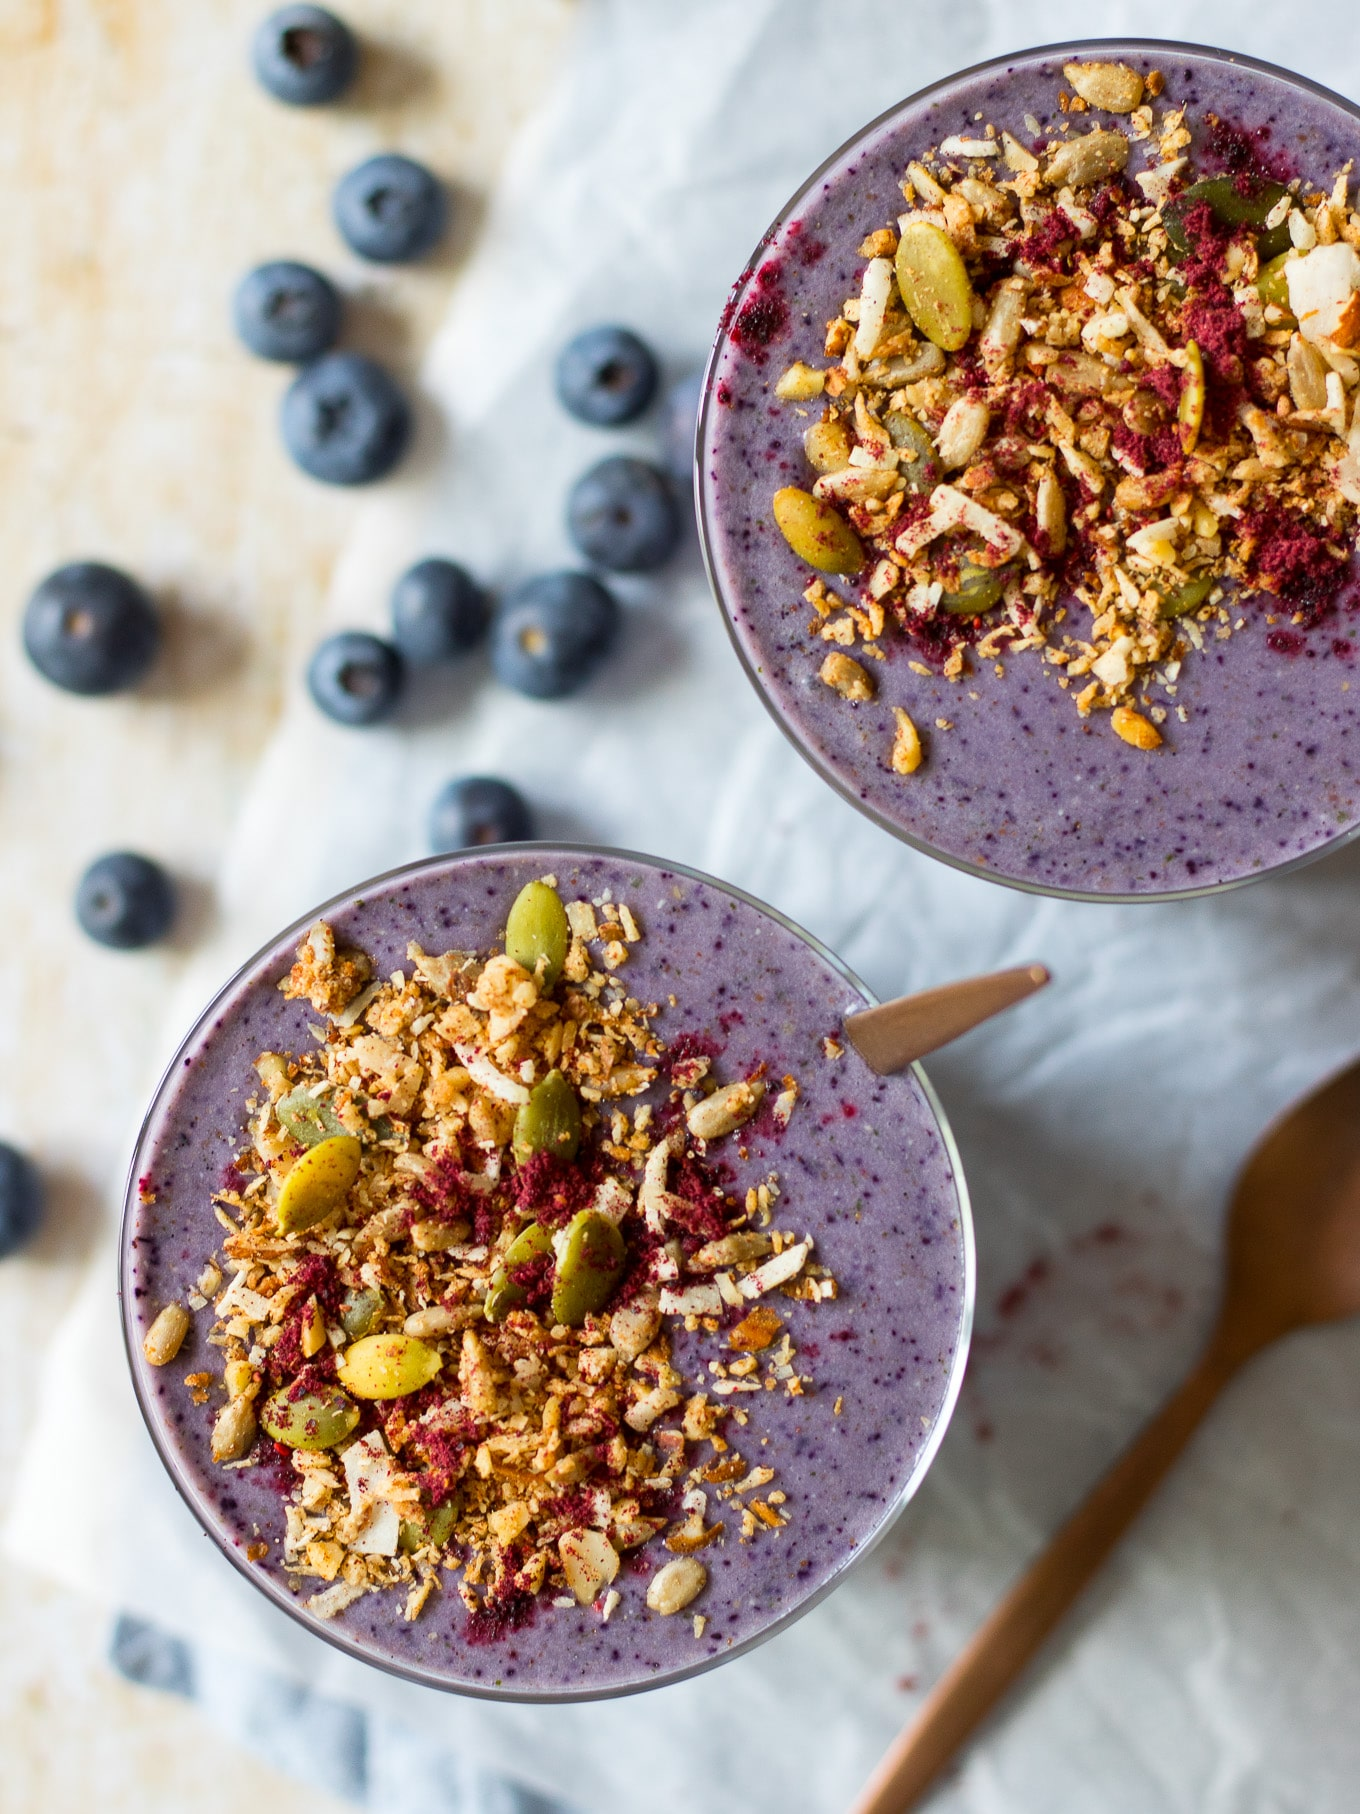 Easy Blueberry Zucchini Protein Smoothie made with frozen zucchini for a super thick creamy smoothie! Healthy, simple and delicious. Gluten free, paleo and with a vegan option.